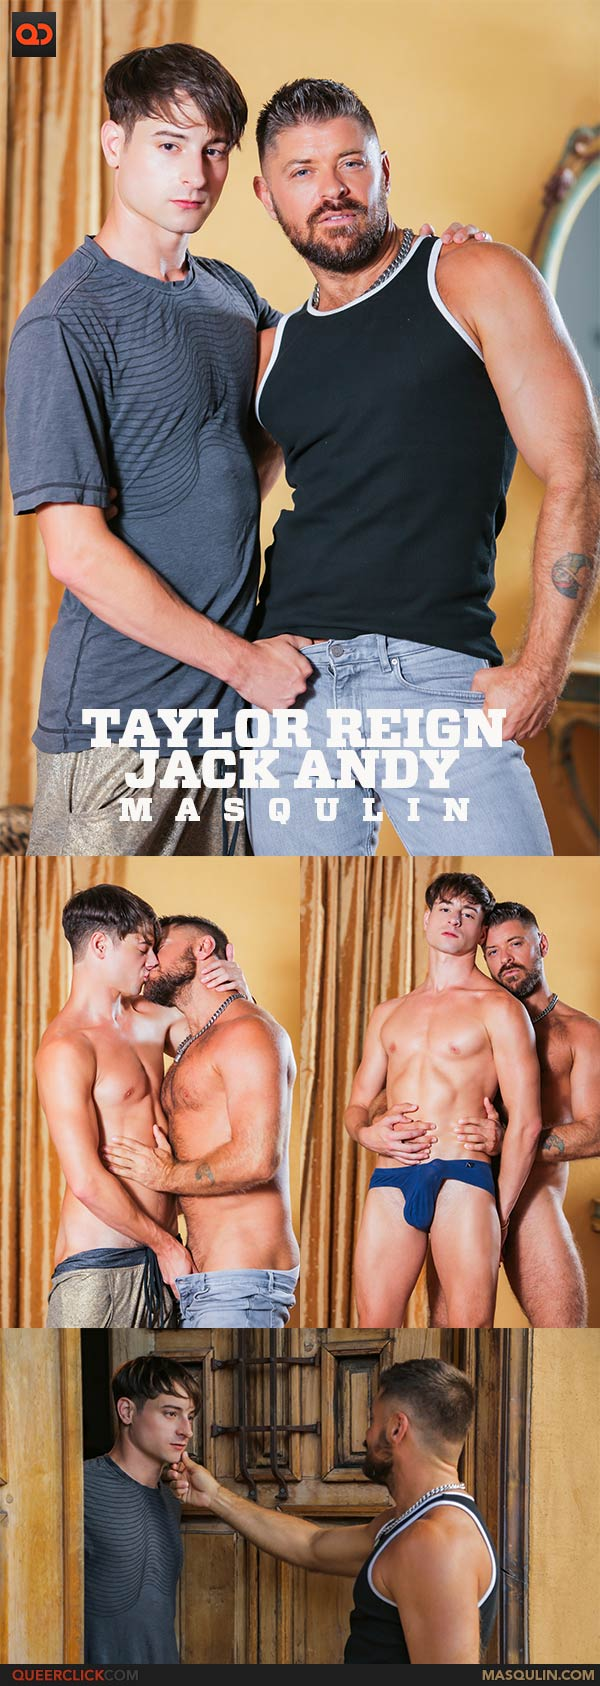 Masqulin: Taylor Reign and Jack Andy